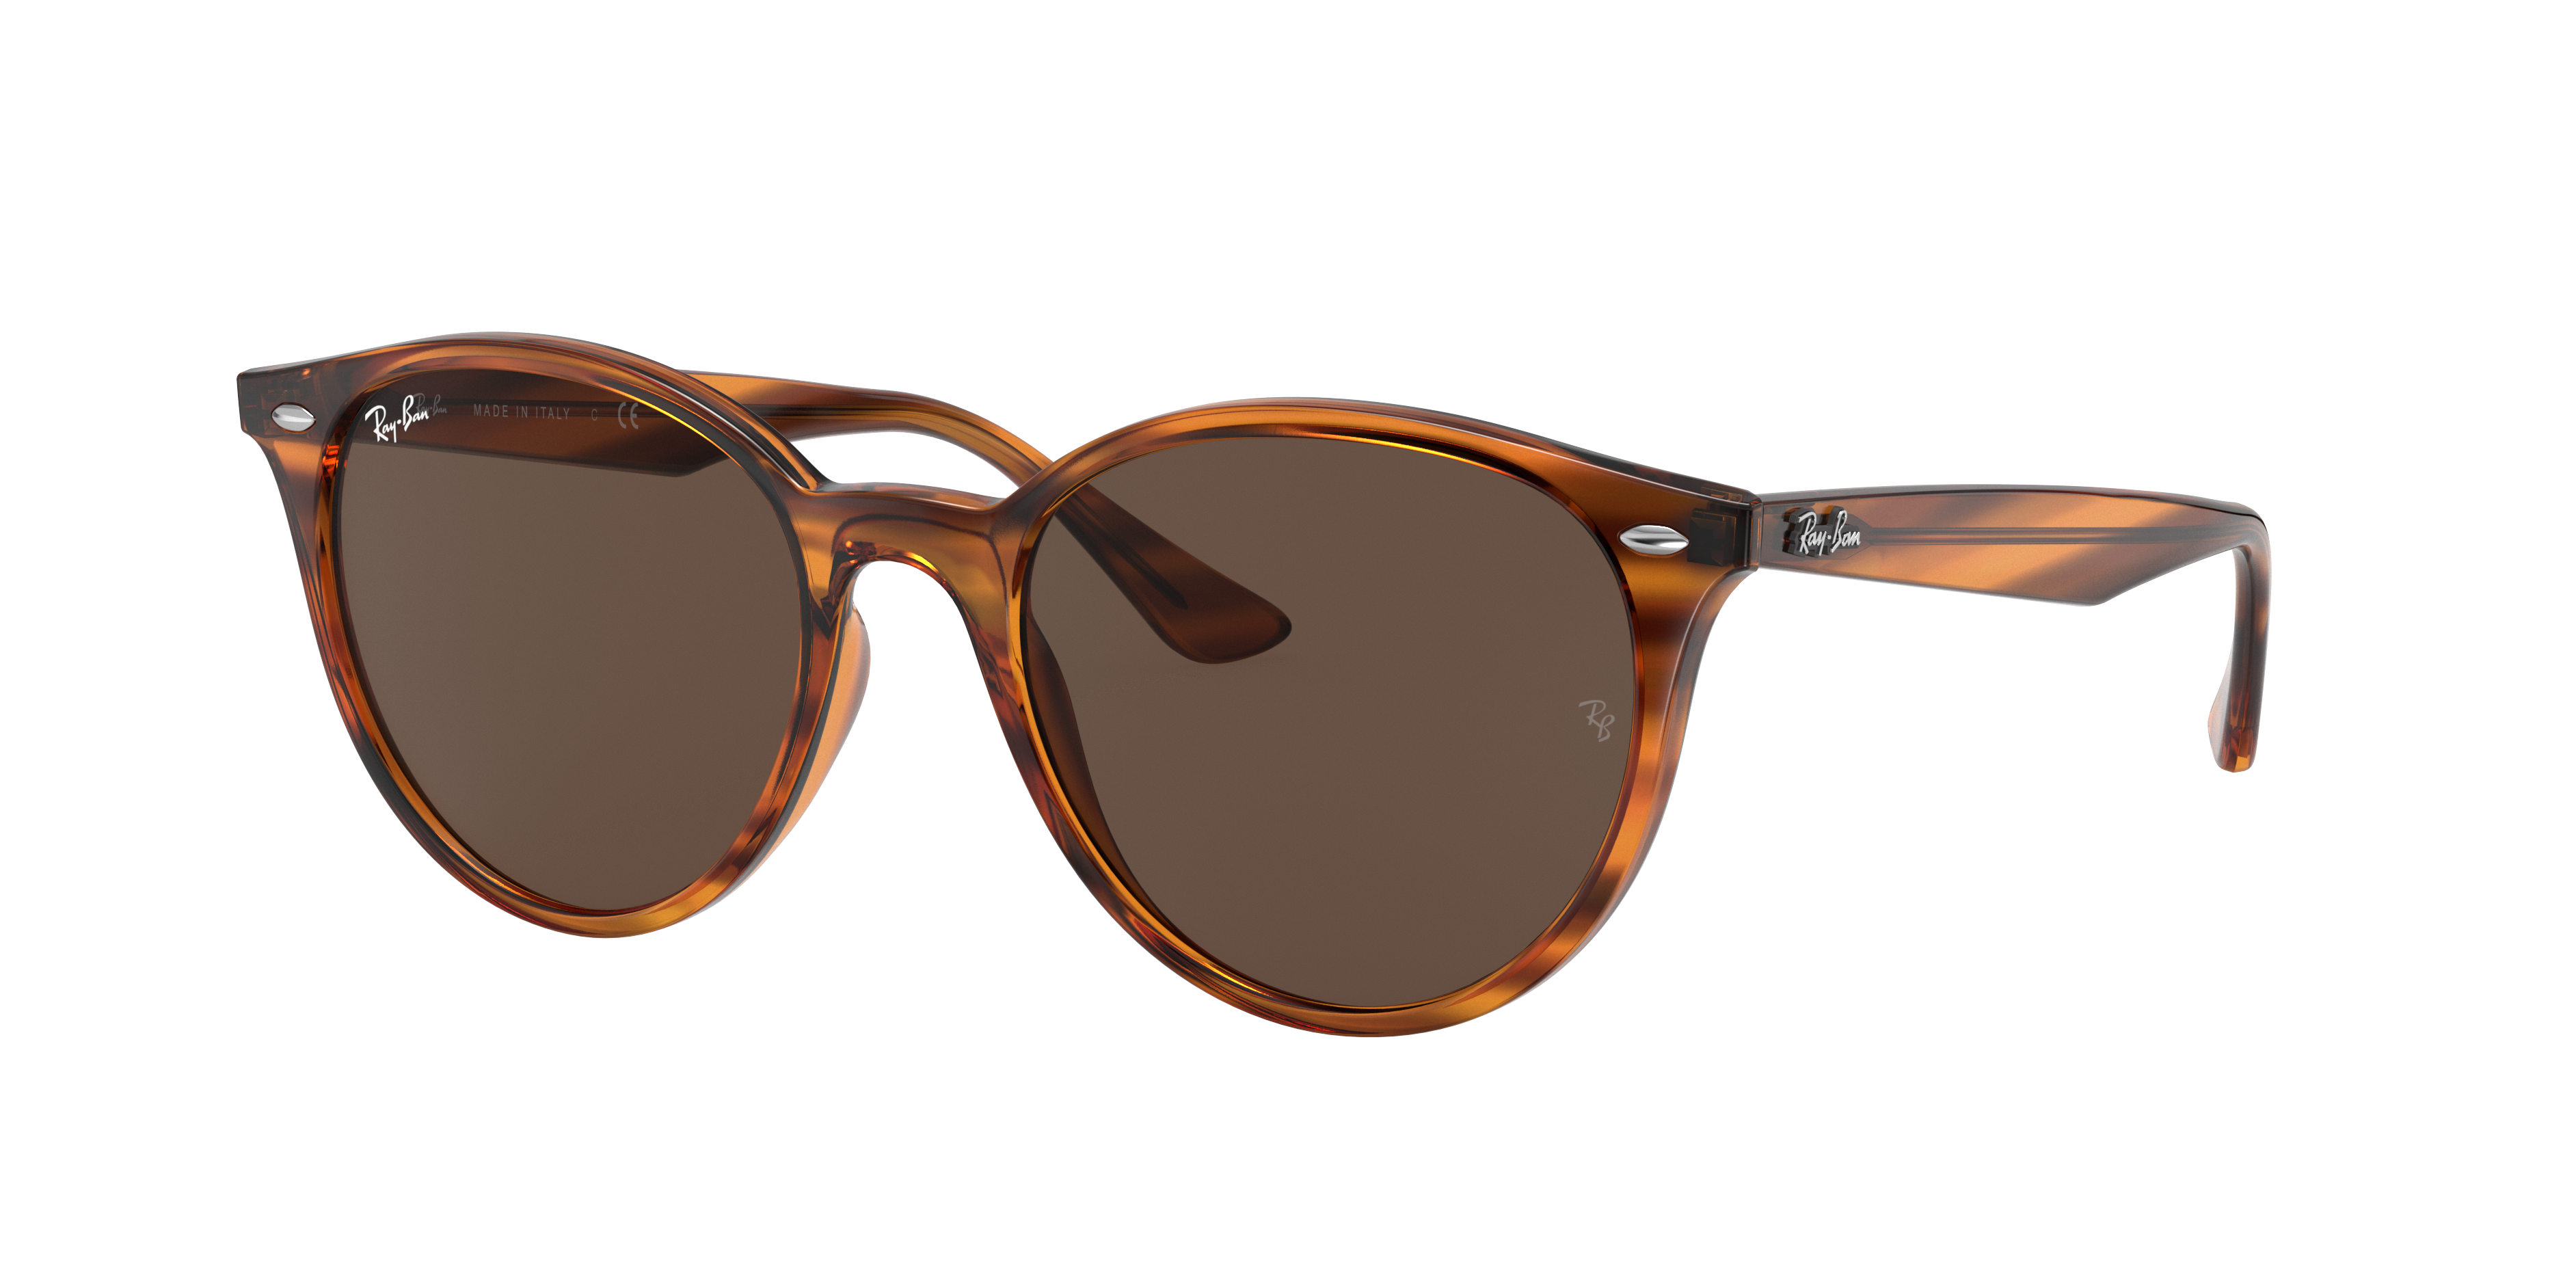 Ray-Ban Rb4305 Striped Red Havana, Brown Lenses - RB4305